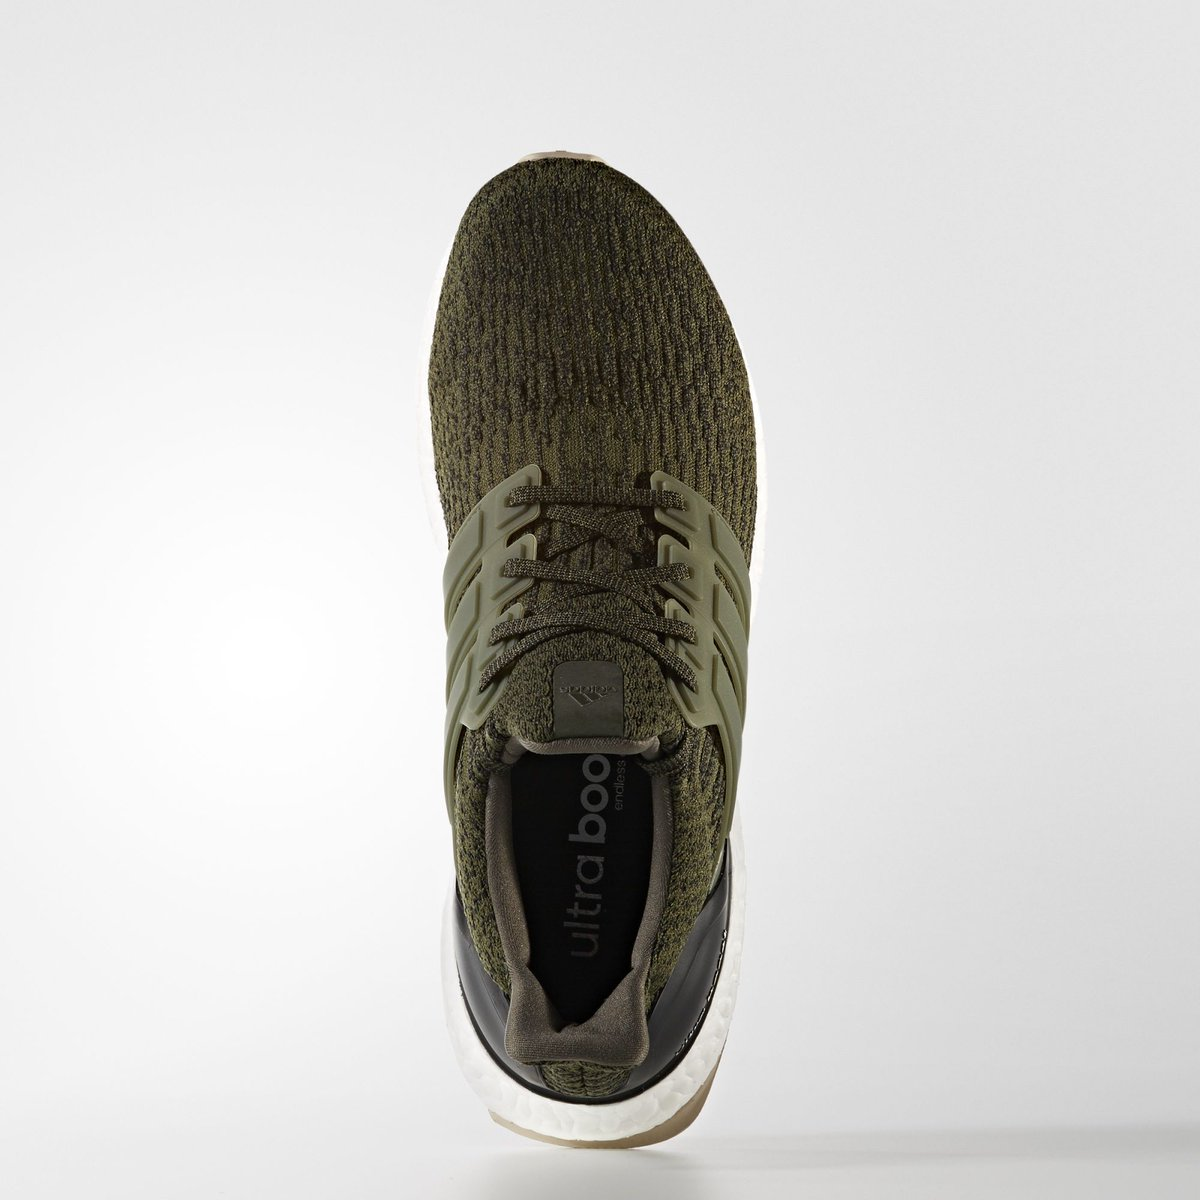 aef76f3a9 ... aliexpress adidas alerts on twitter the night cargo ultra boost 3.0 is  scheduled to restock this